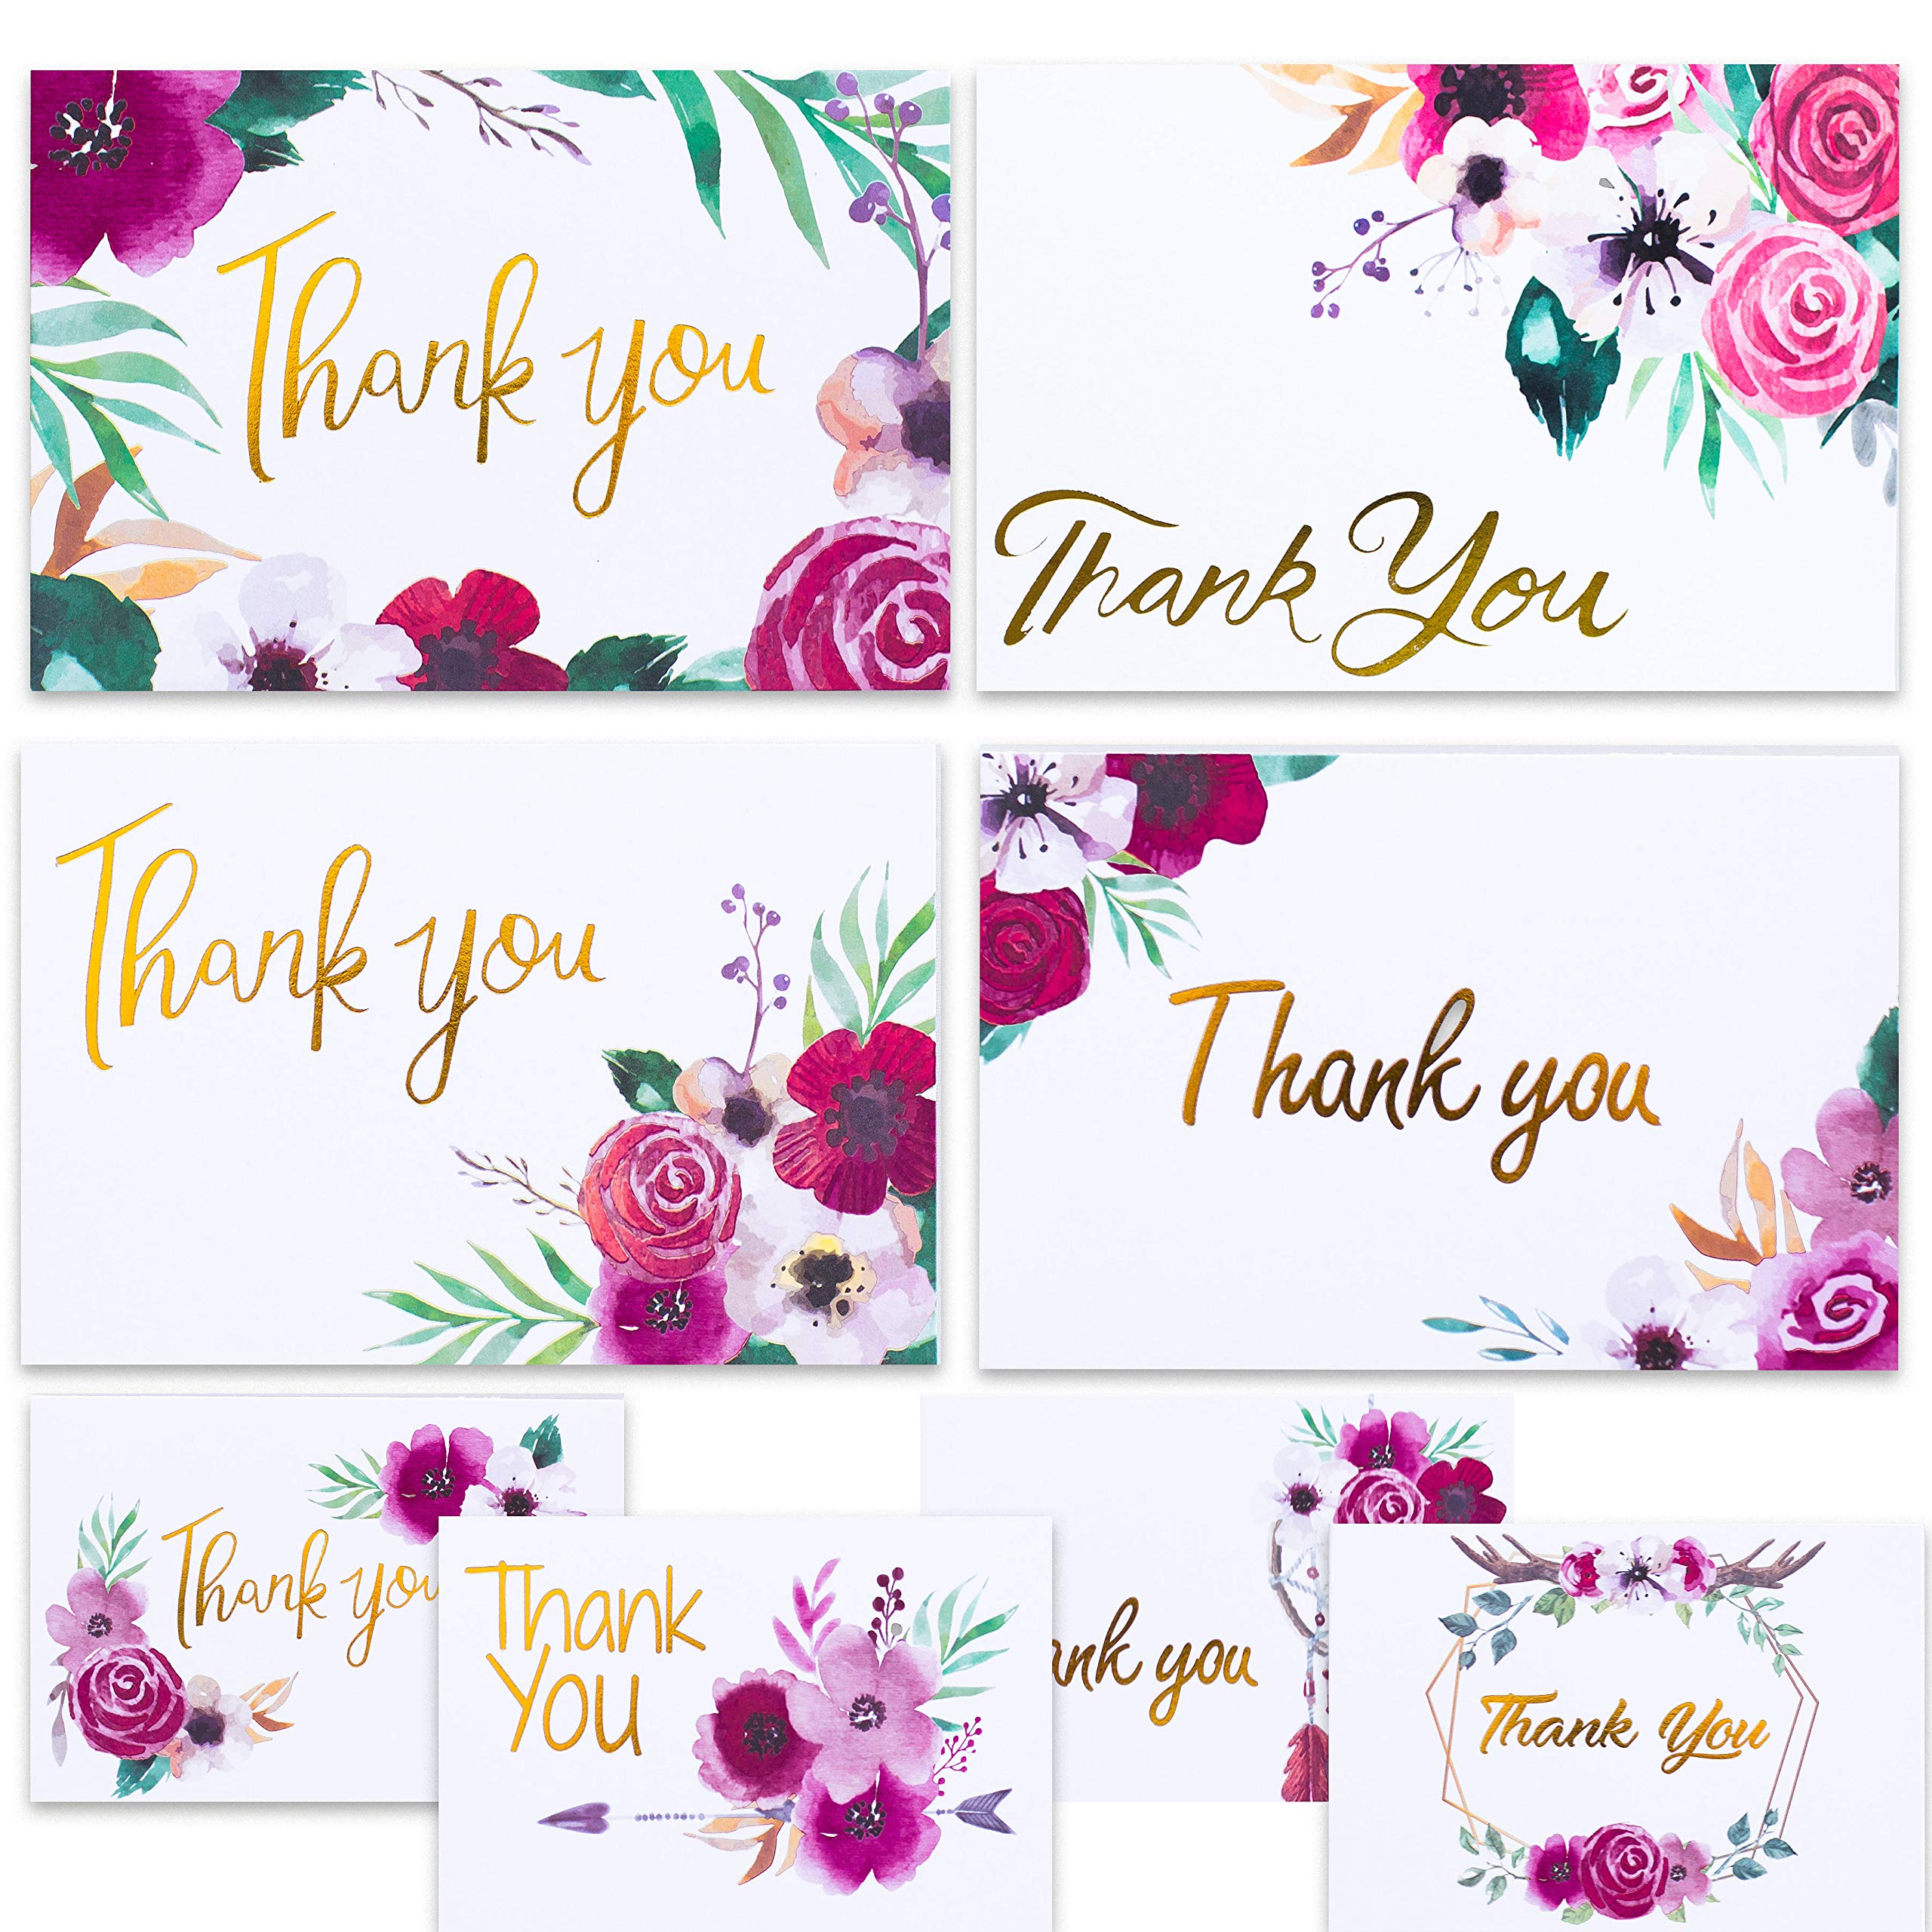 Nest Designs Boho Floral Thank You Cards for Designer Thank You Notes! Bulk Set of 48 Blank Cards with Envelopes for Baby Shower Note Cards, Wedding Thank You Cards and Bridal Shower Thankyou Card